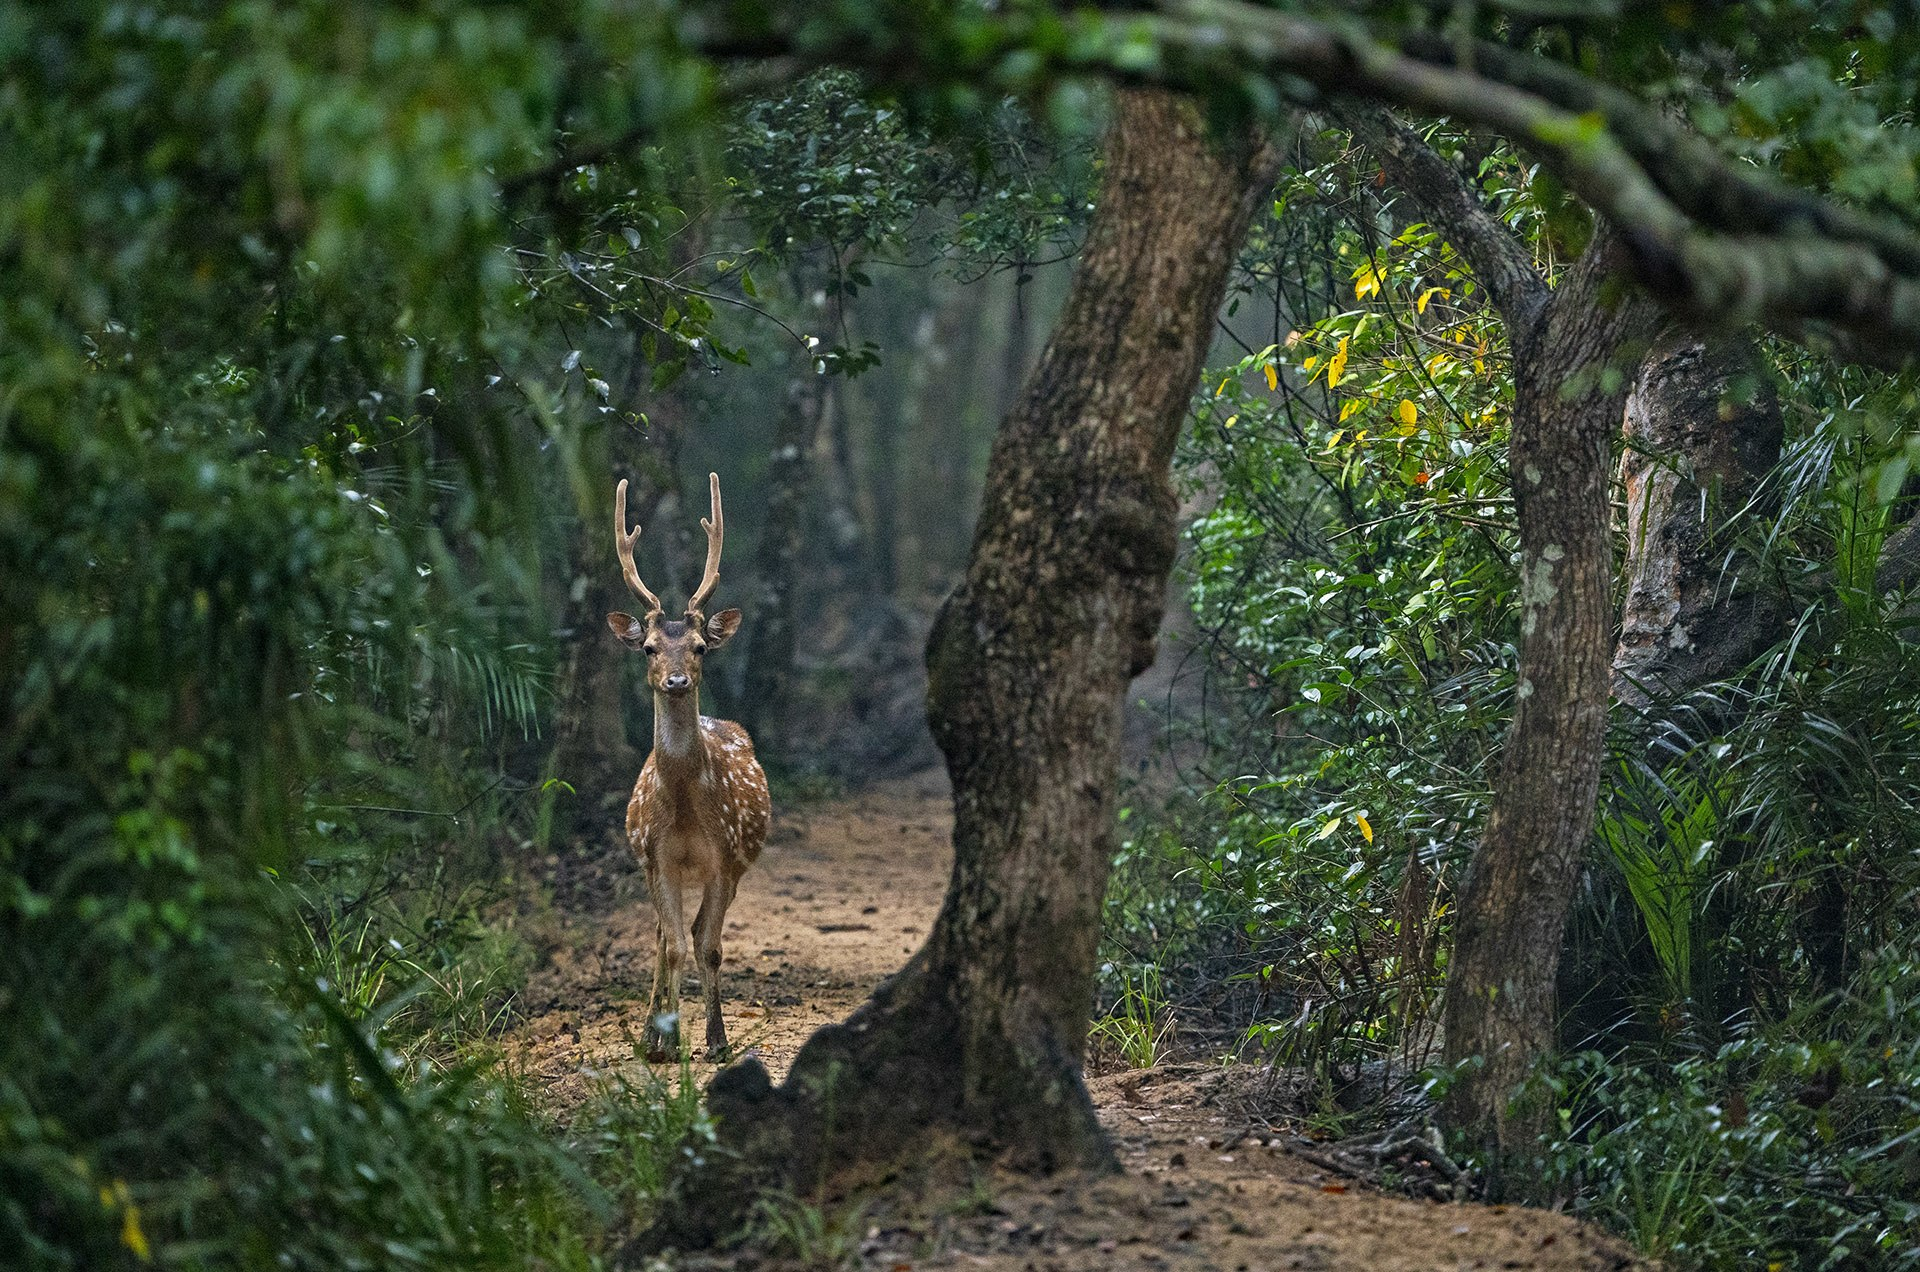 The spotted deer or chital, is the most common deer species in India. In Bhitarkanika, you mostly encounter them on walking trails.